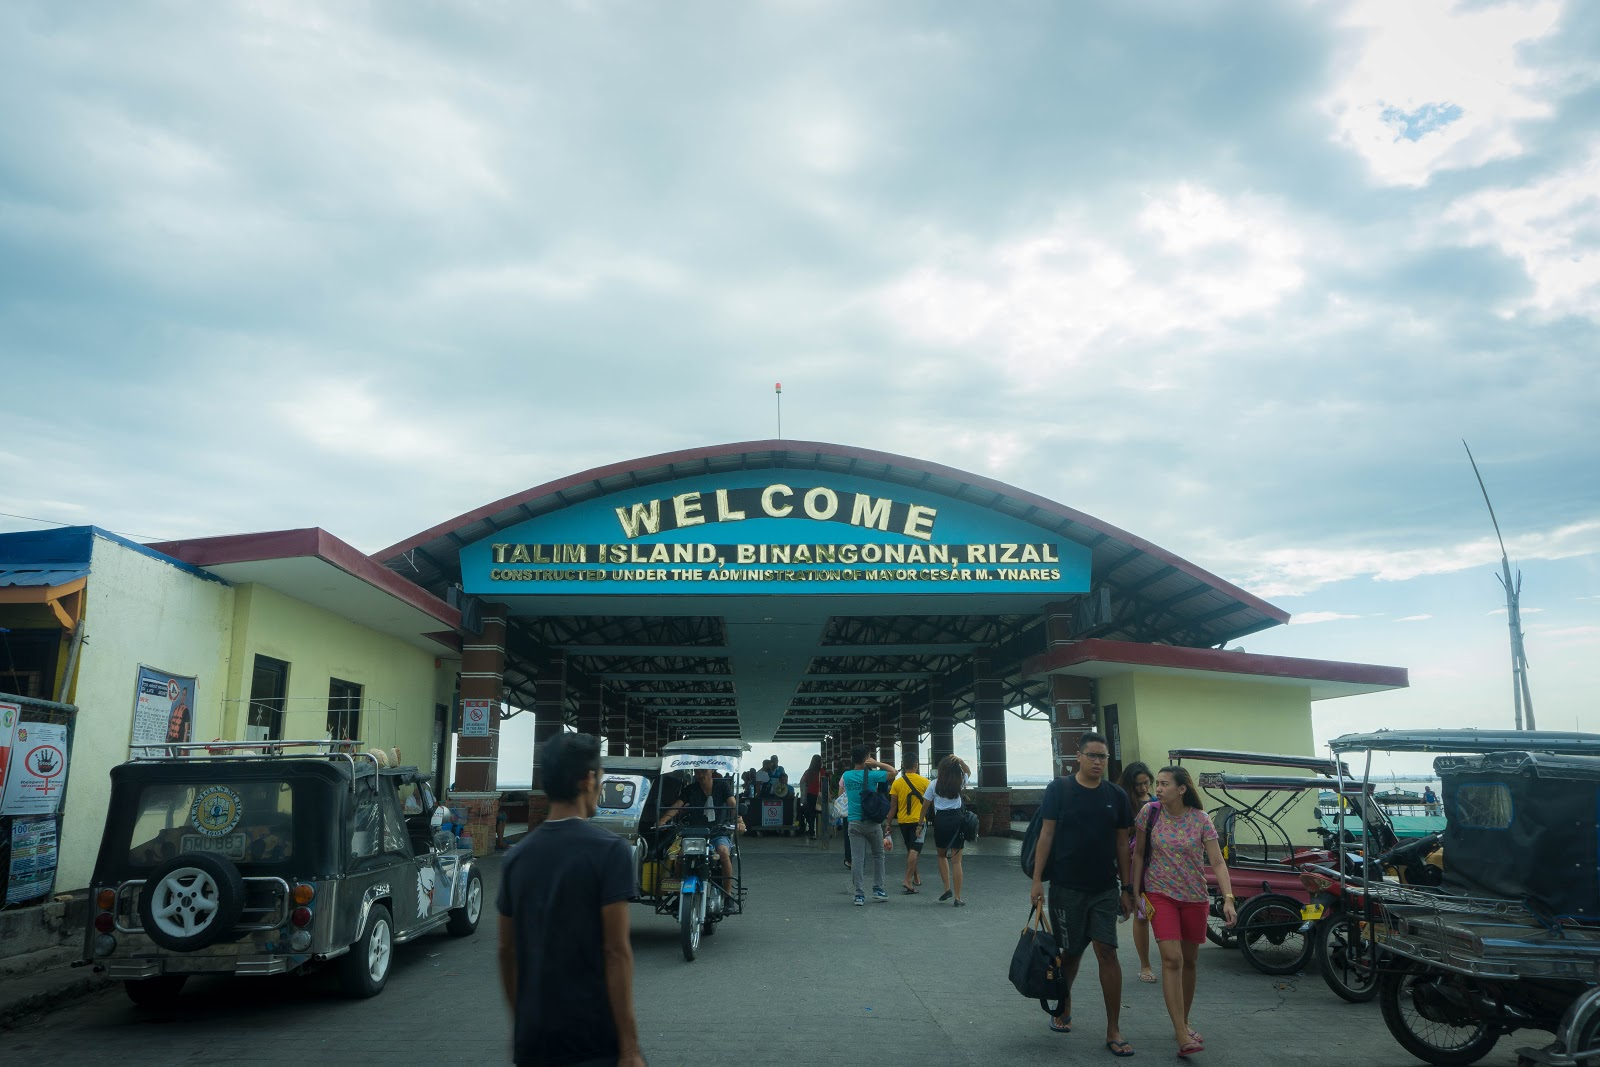 Binangonan Fish Port